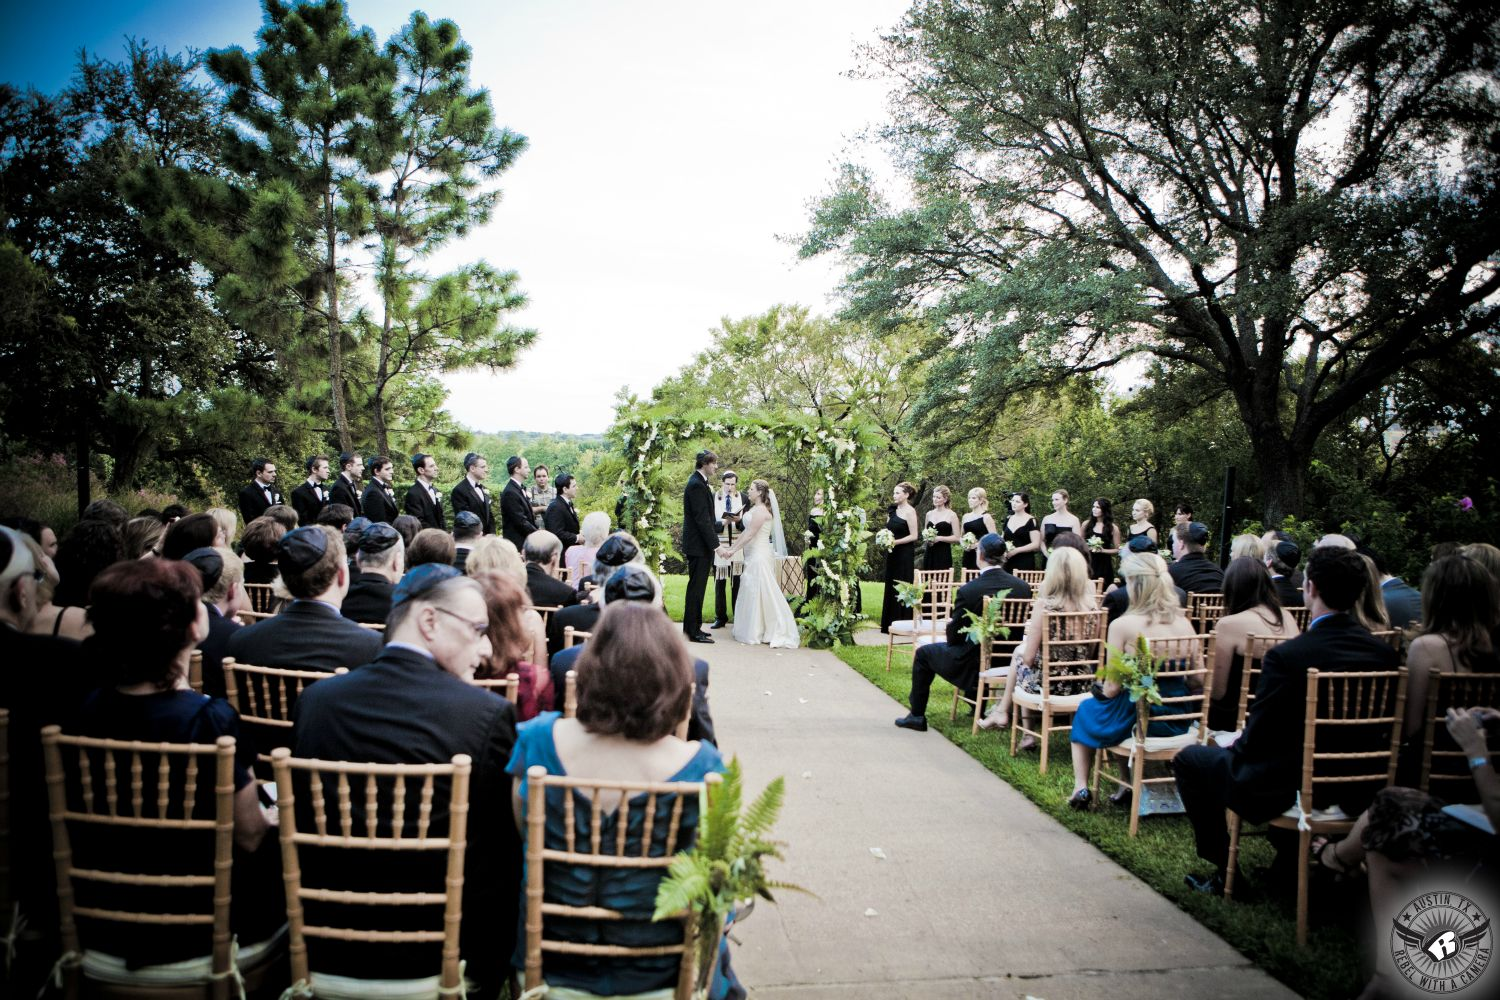 Elegant Outdoor Jewish Wedding Ceremony With Golden Chiavari Chairs Hanging Ferns And Wrought Iron Chuppah